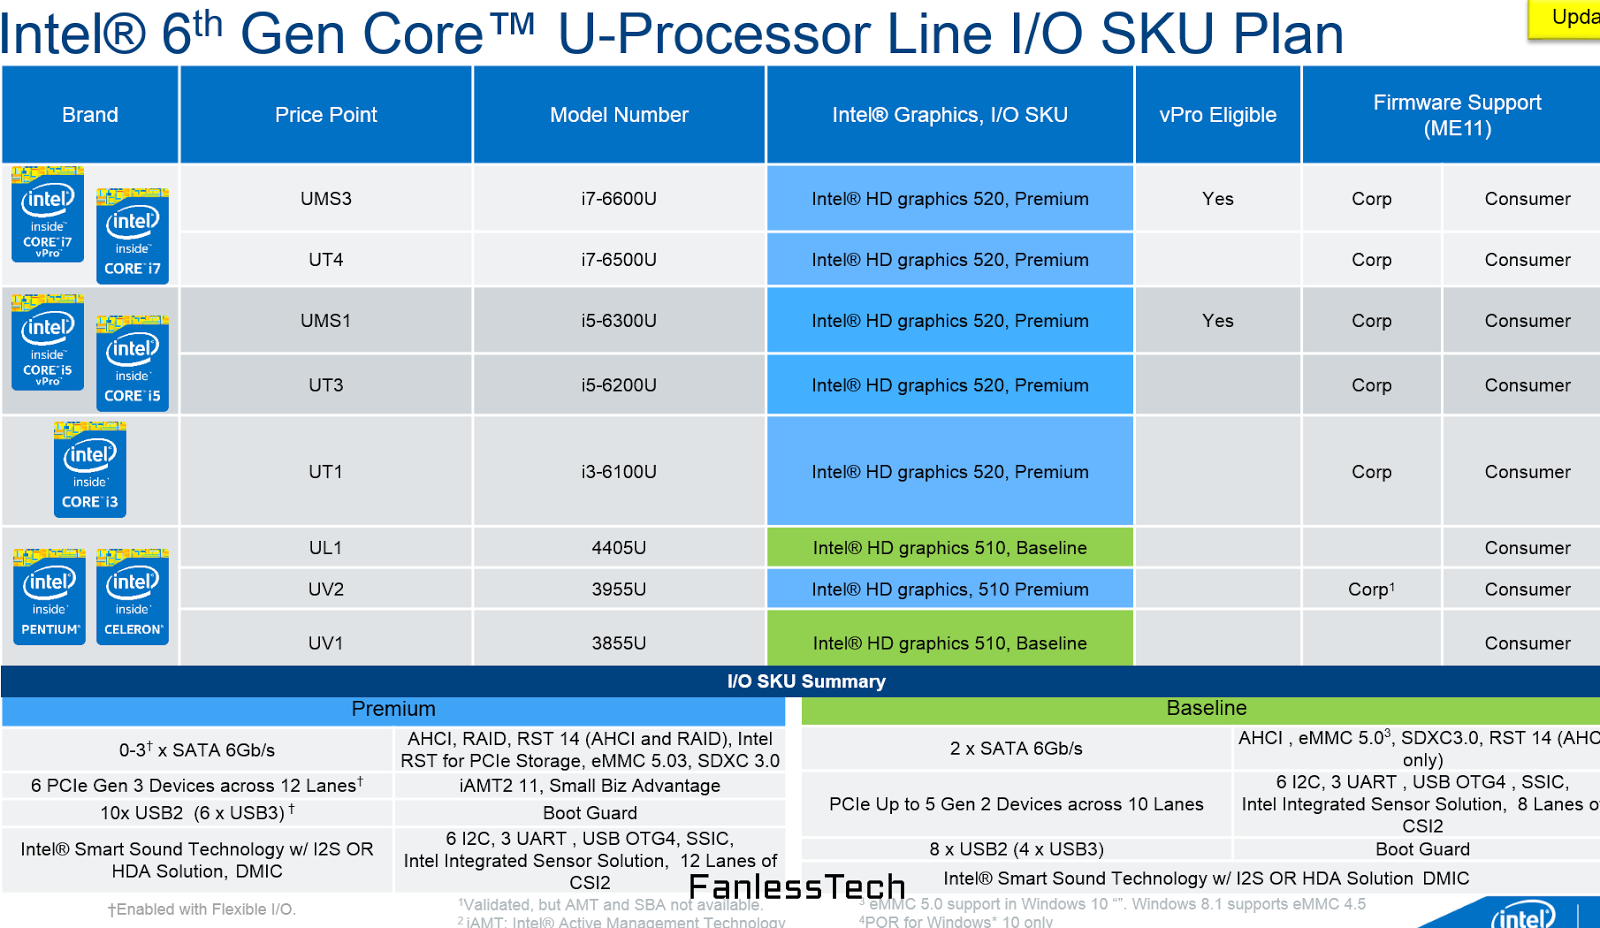 The Skylake-U GPU and chipset details.